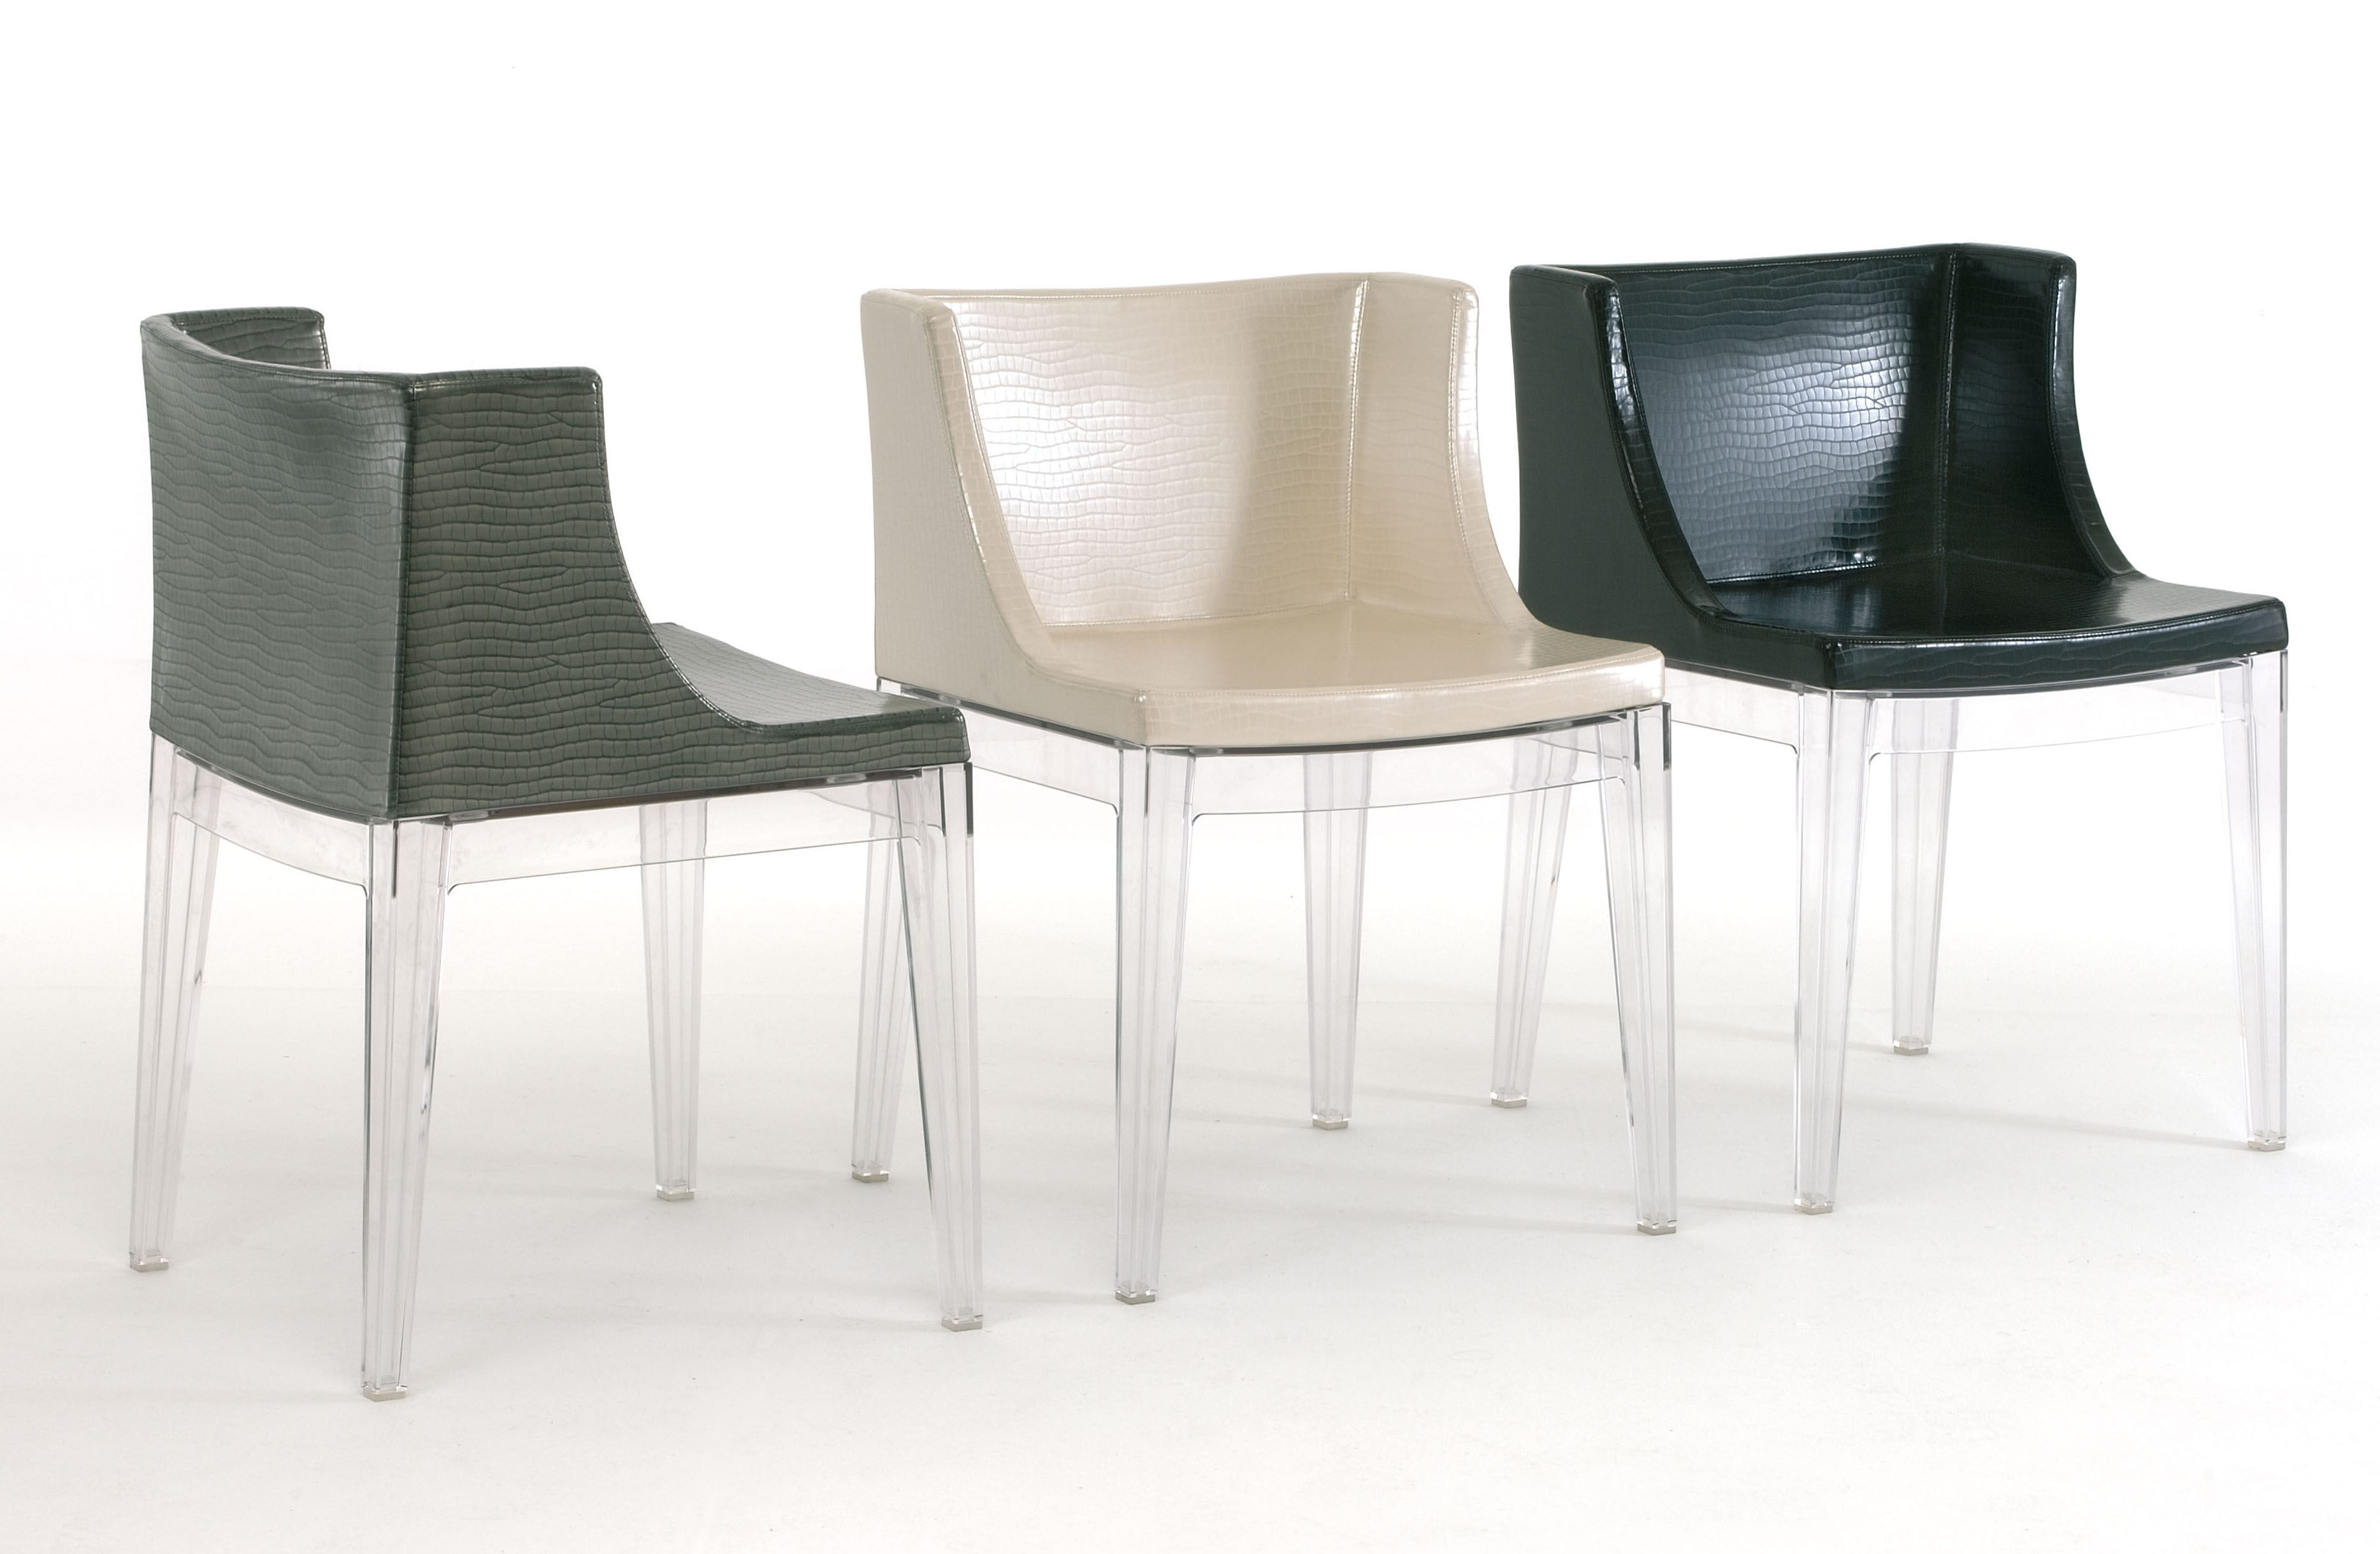 Fauteuil rembourr mademoiselle cocco structure transparente kartell - Chaise mademoiselle starck ...